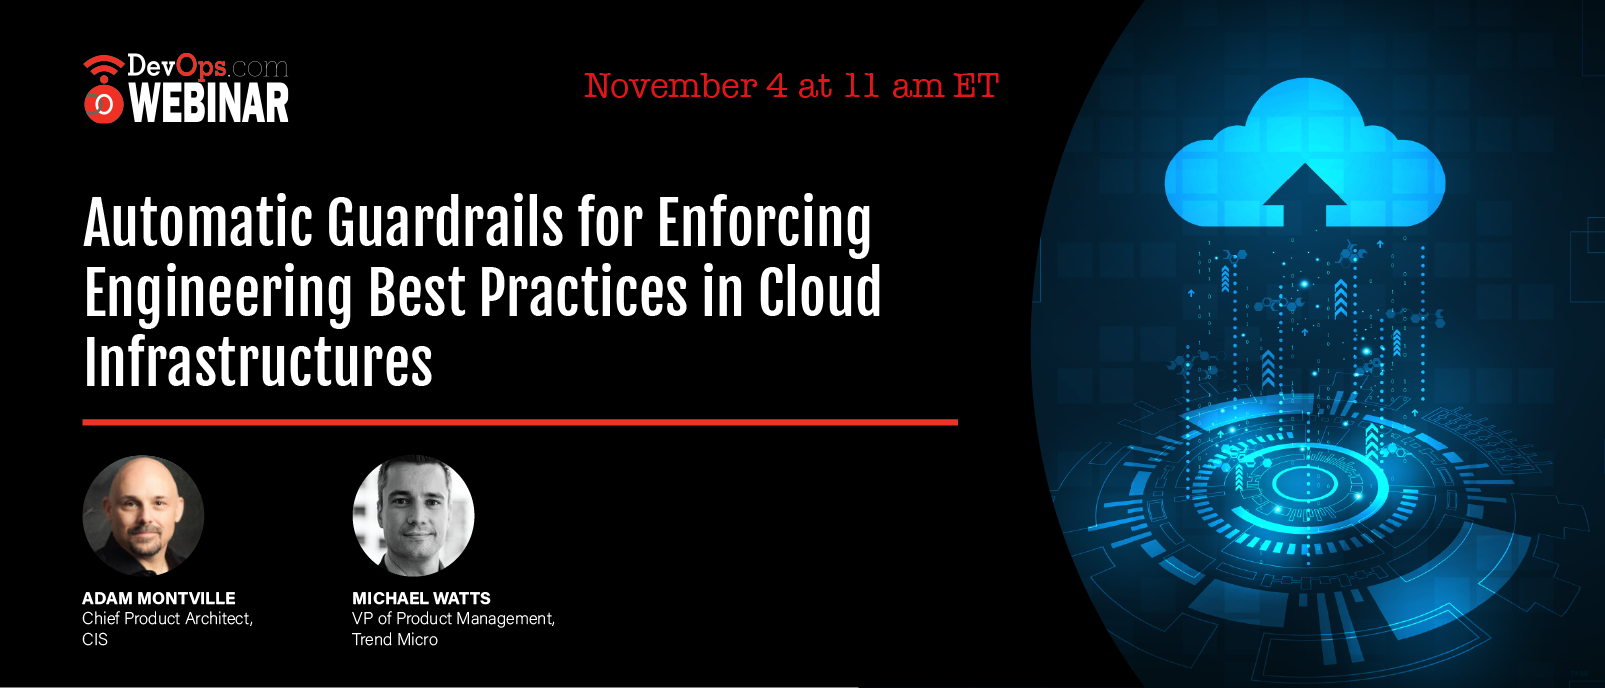 Automatic Guardrails for Enforcing Engineering Best Practices in Cloud Infrastructures